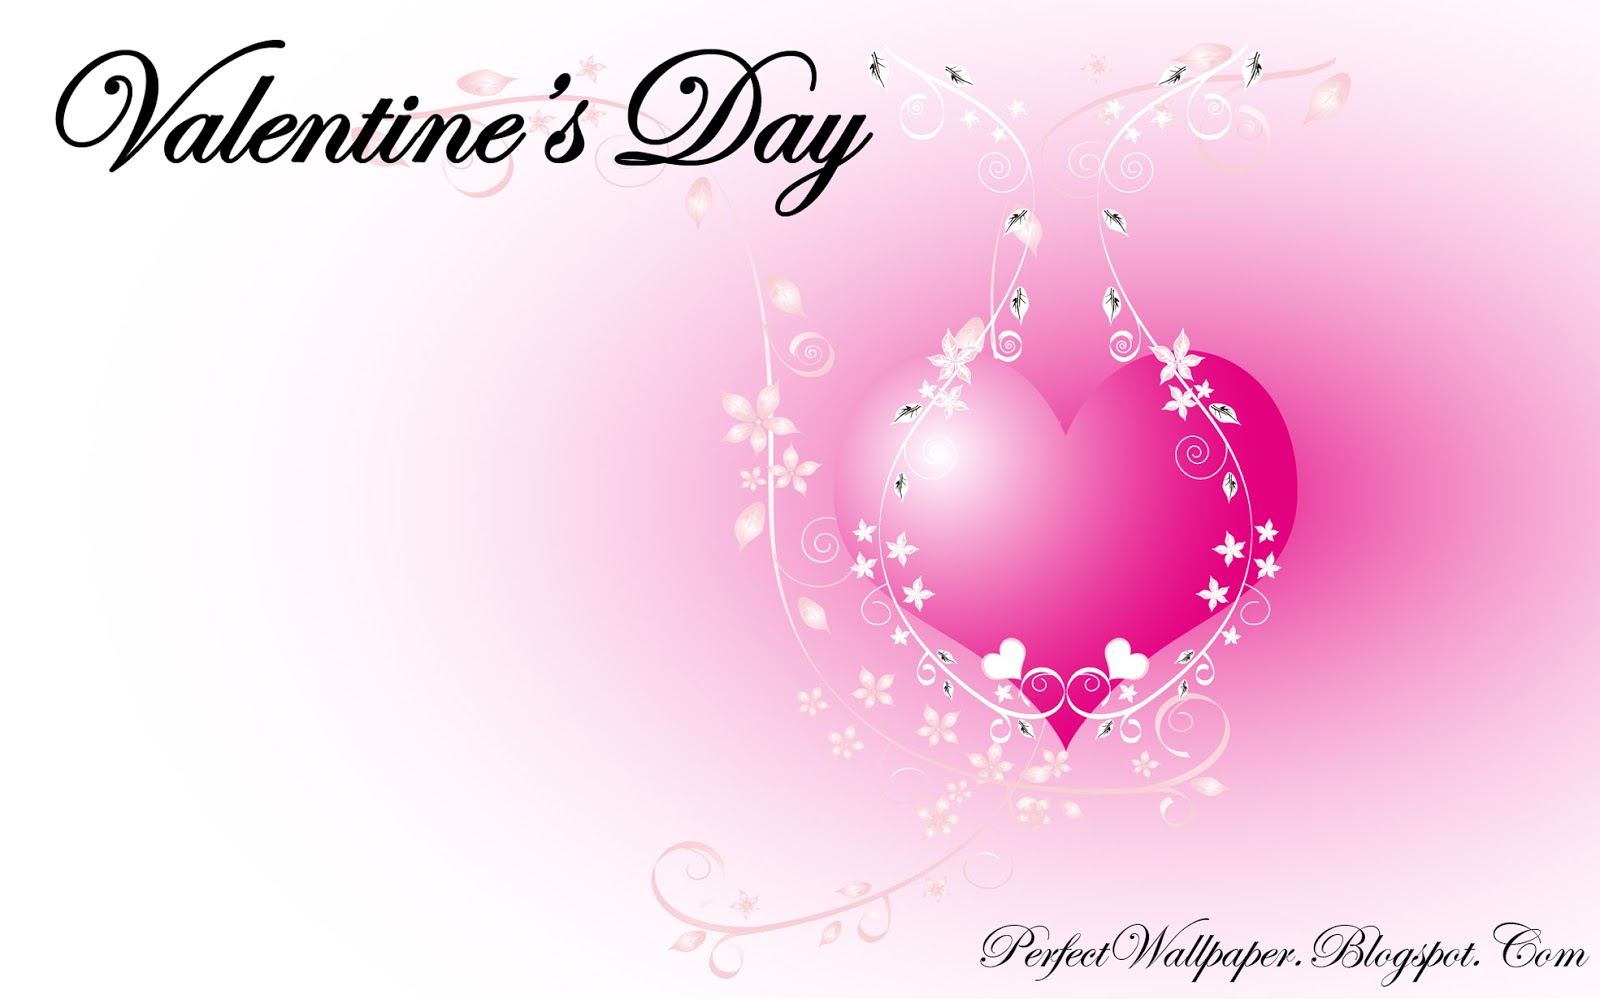 Valentine's Day Pink Wallpaper | Perfect Wallpaper